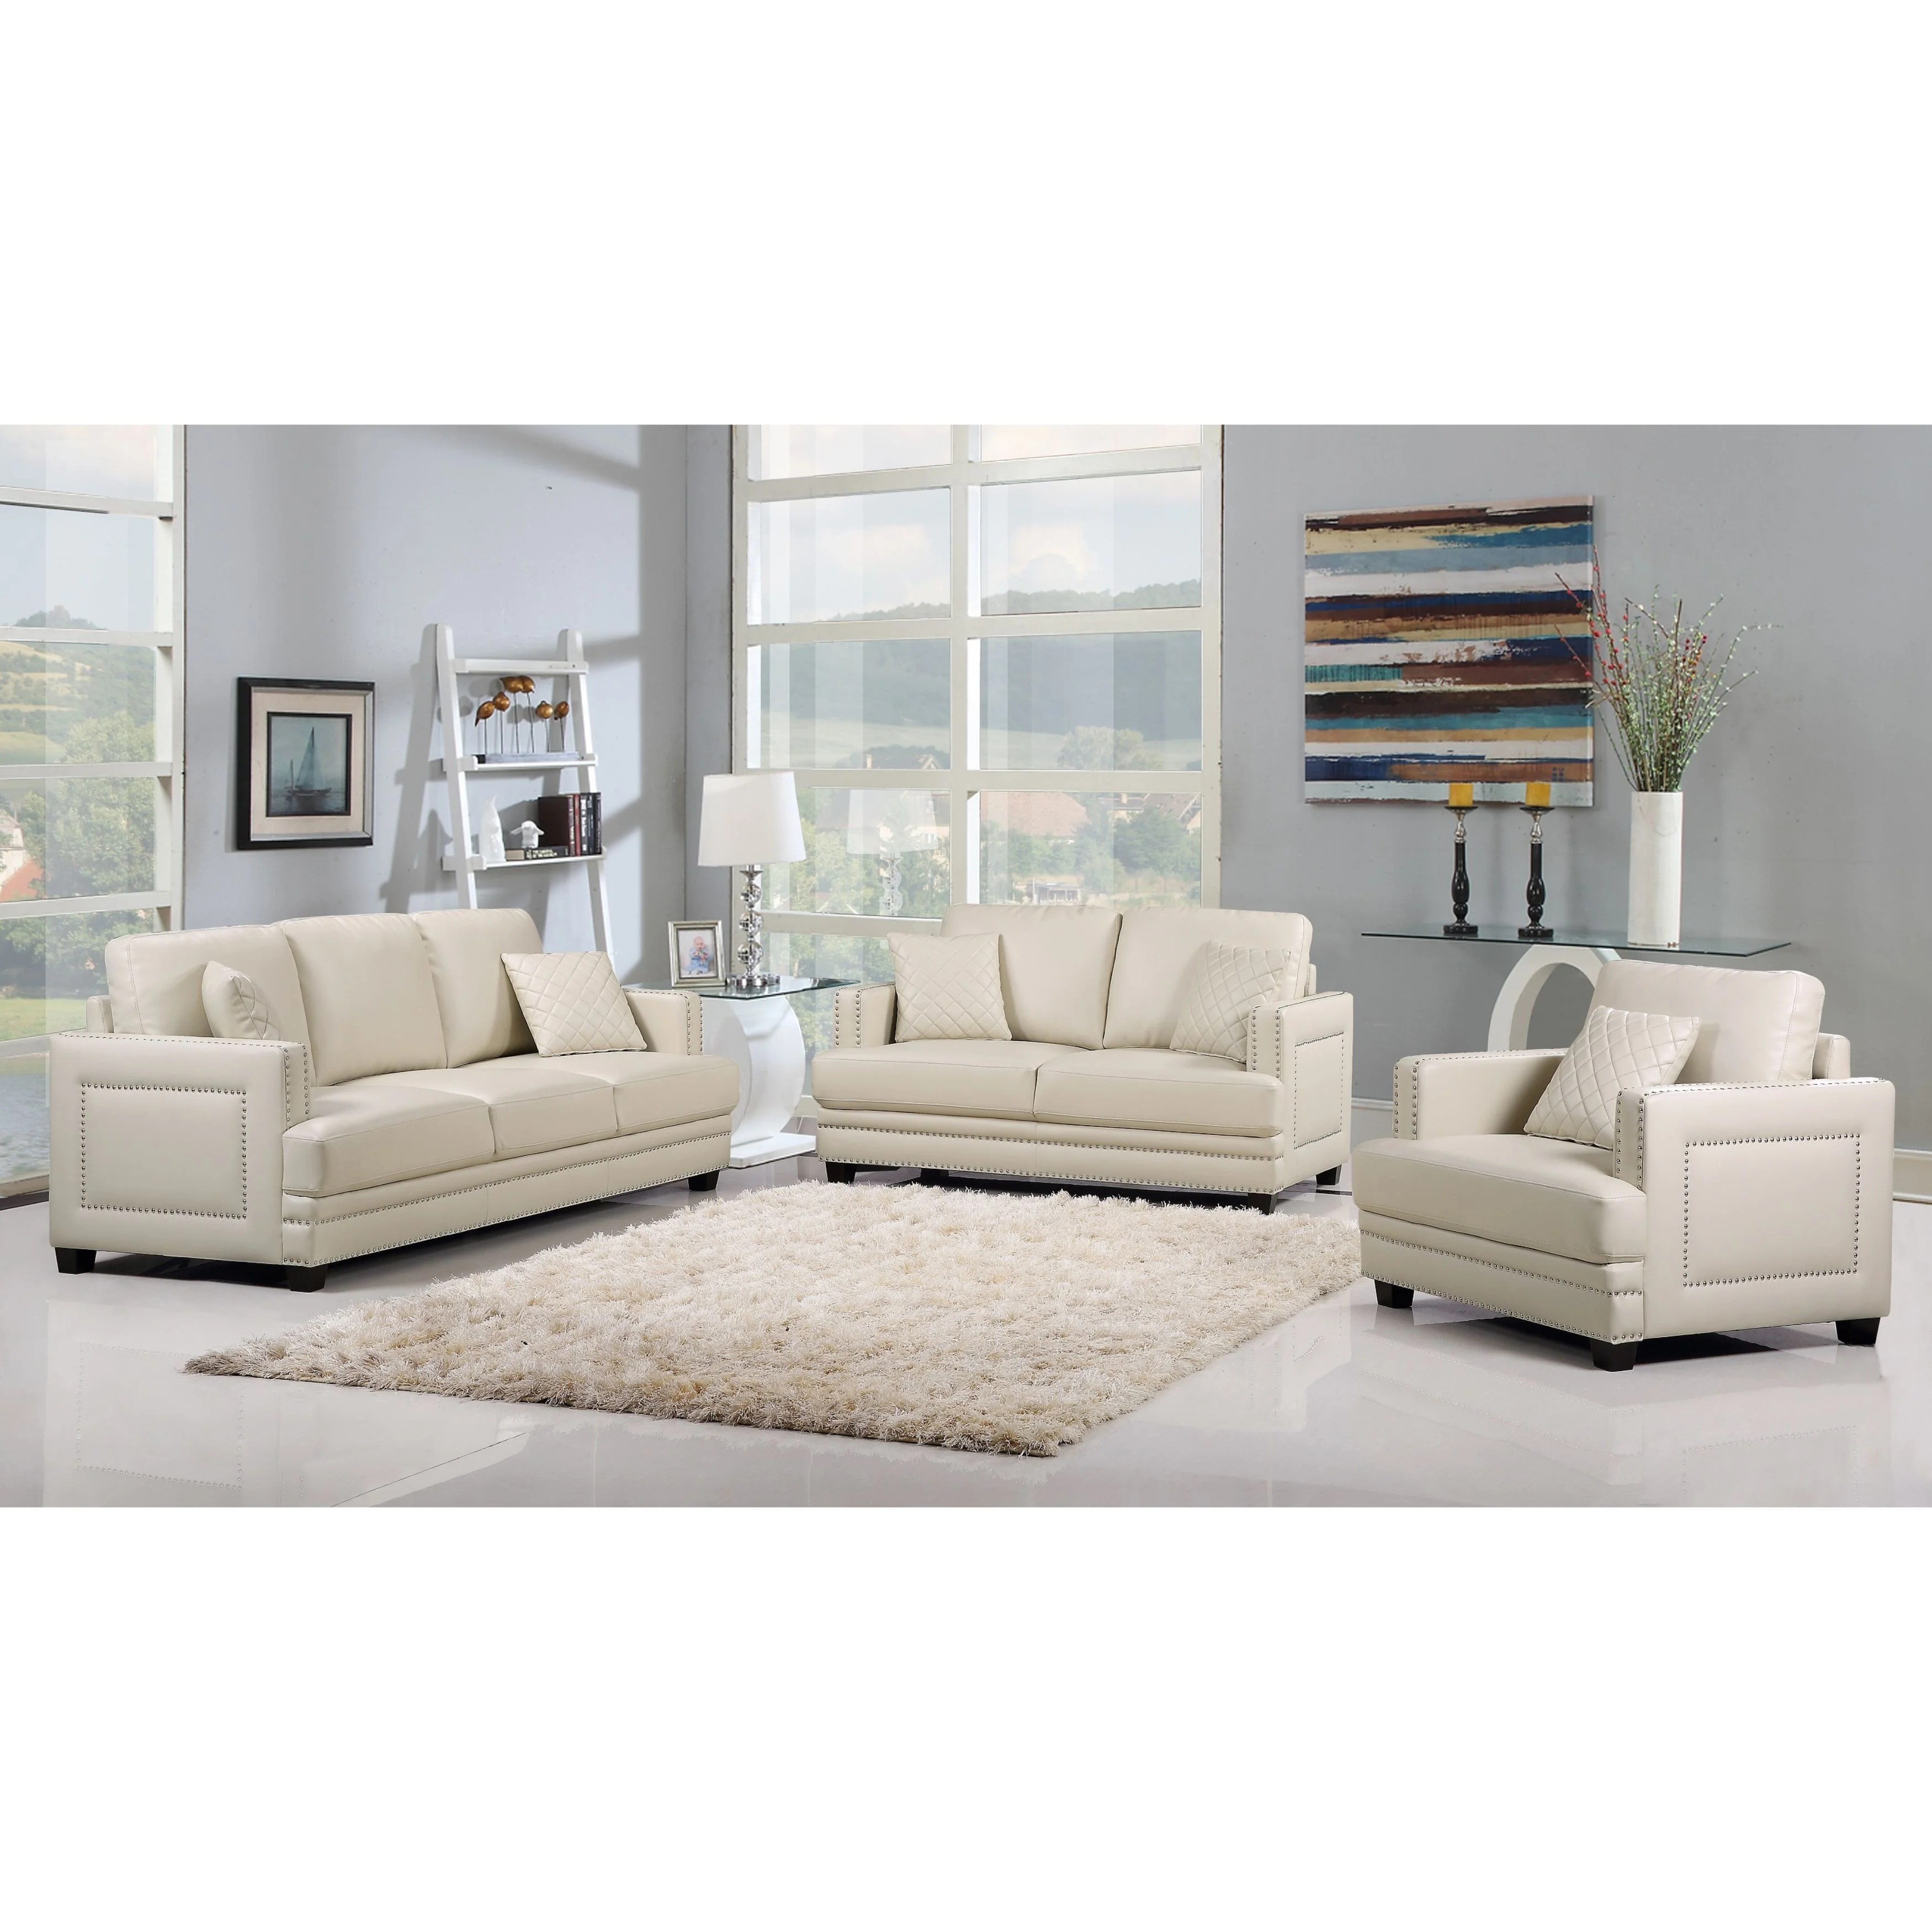 Contemporary Living Set Ferrara Beige Leather Nailhead Modern Contemporary Living Room Set